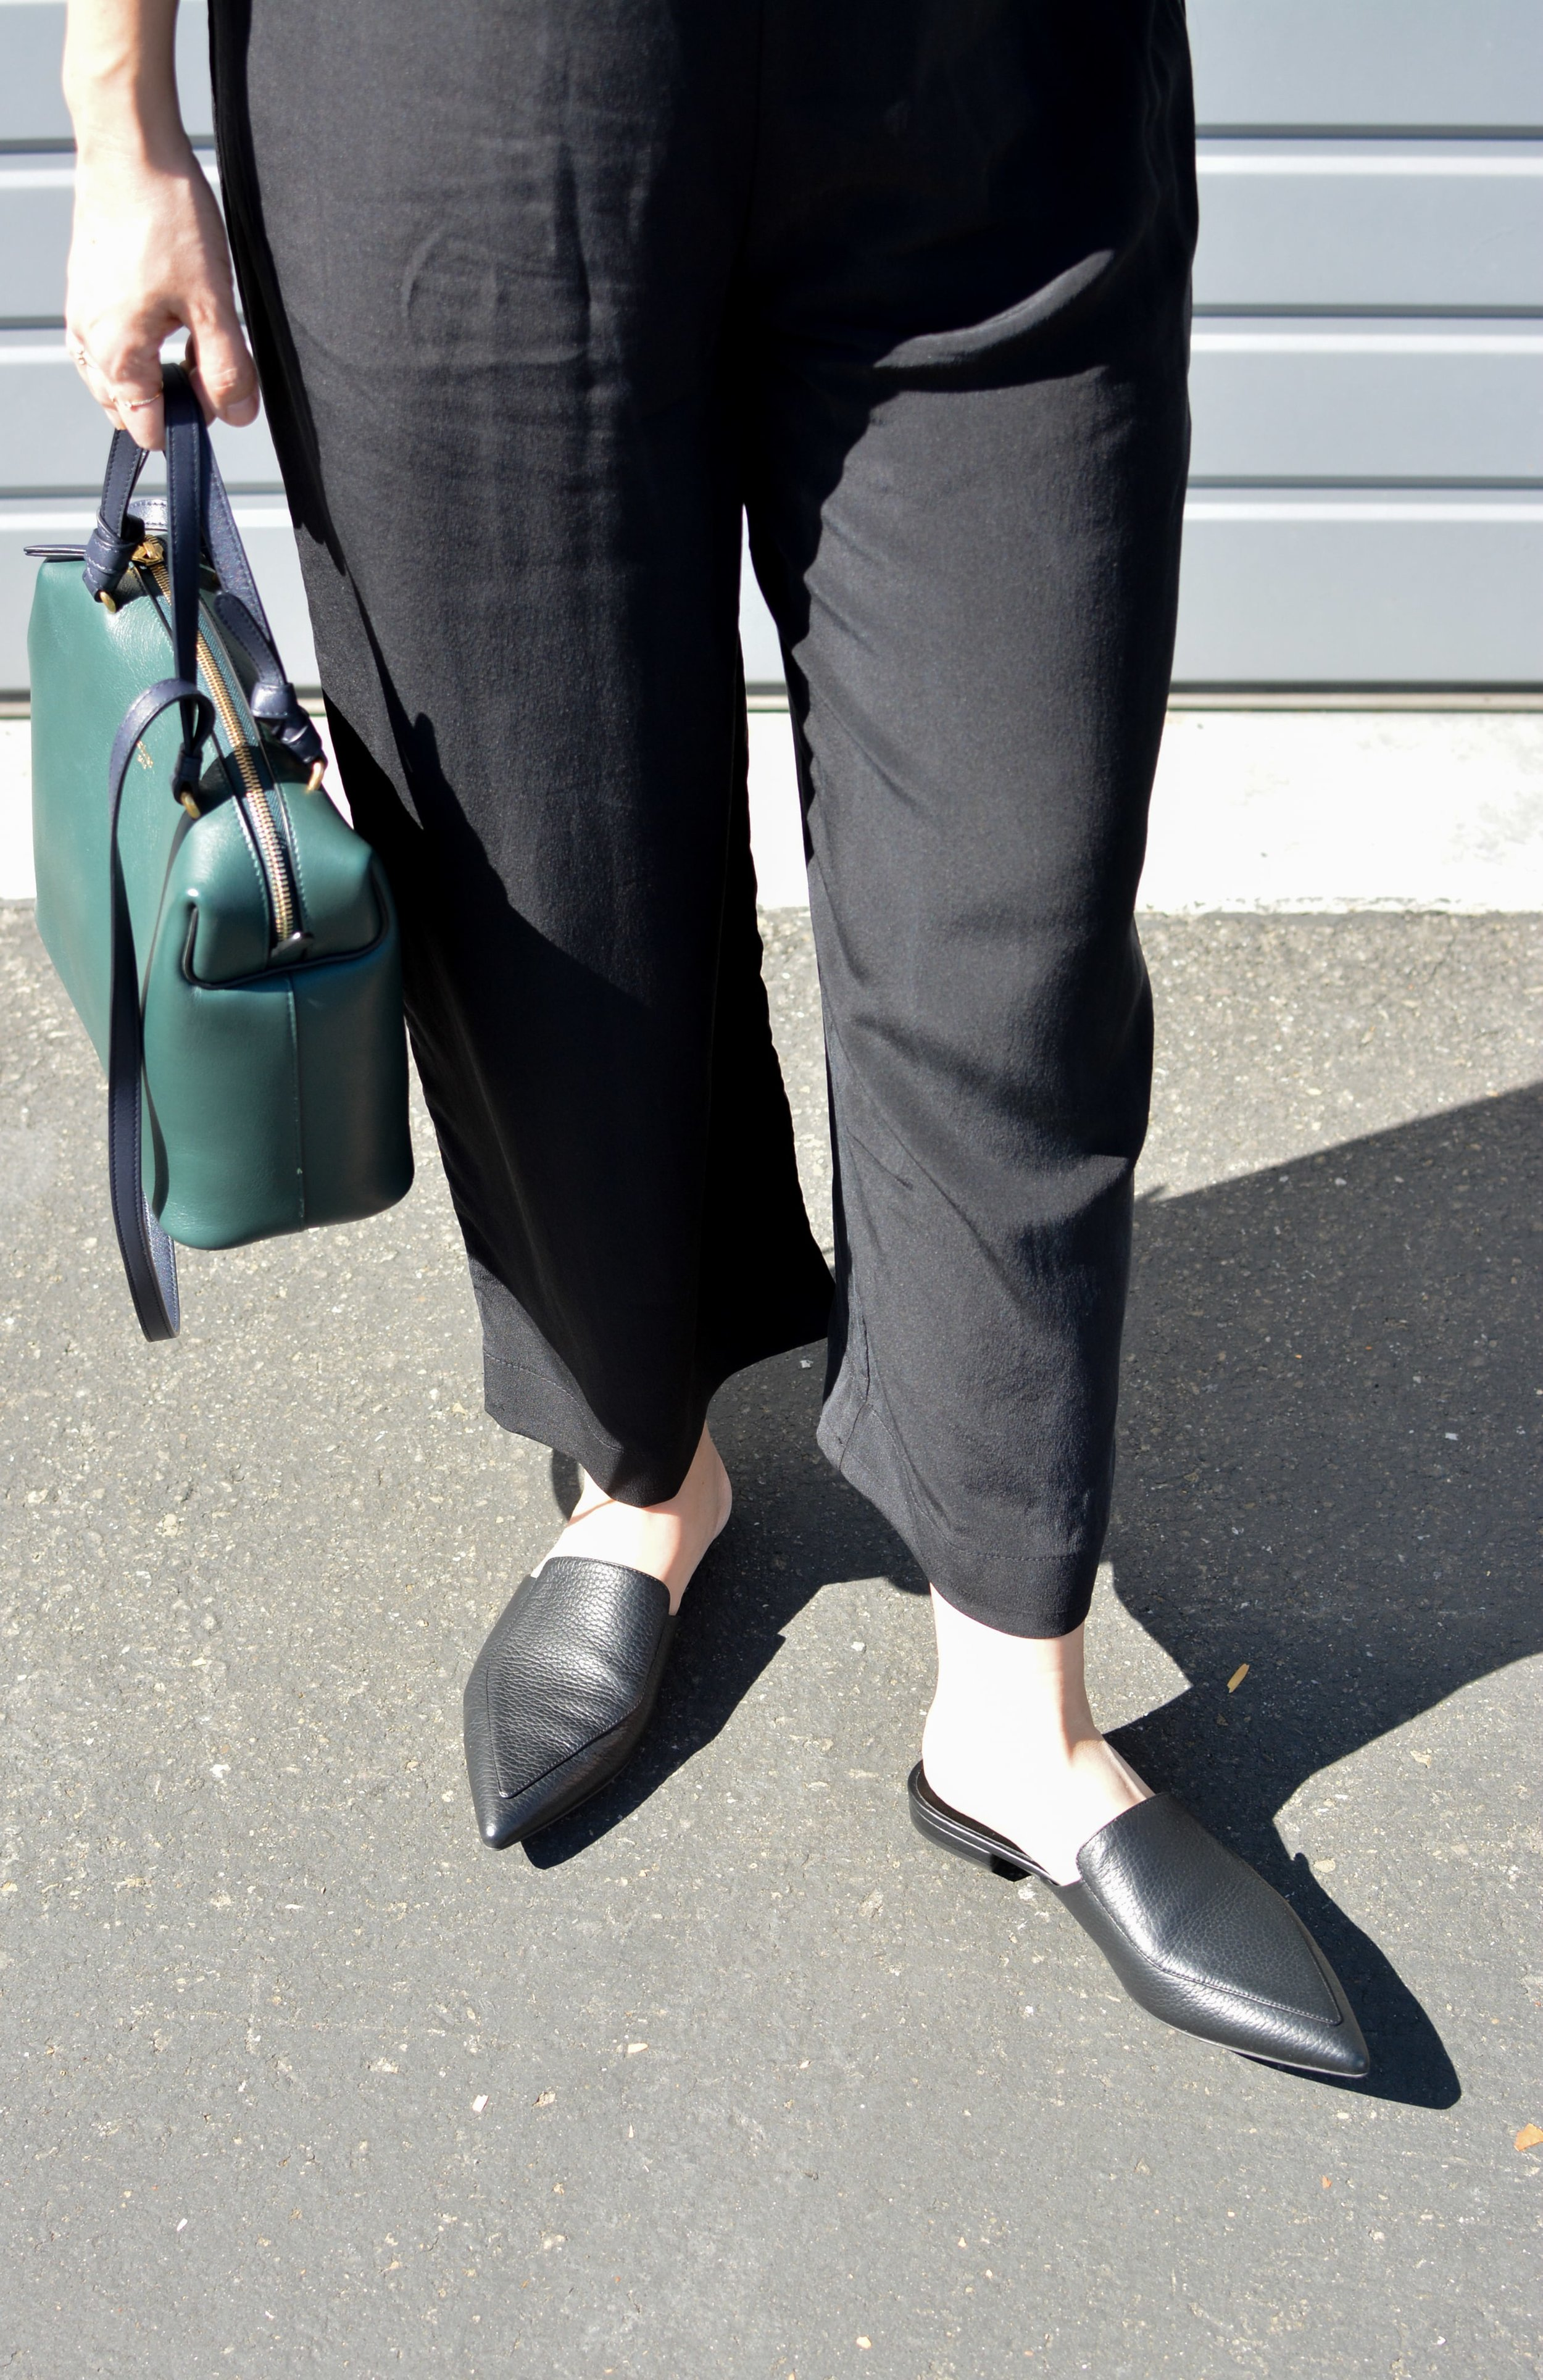 Everlane Review: The Boss Mules and The